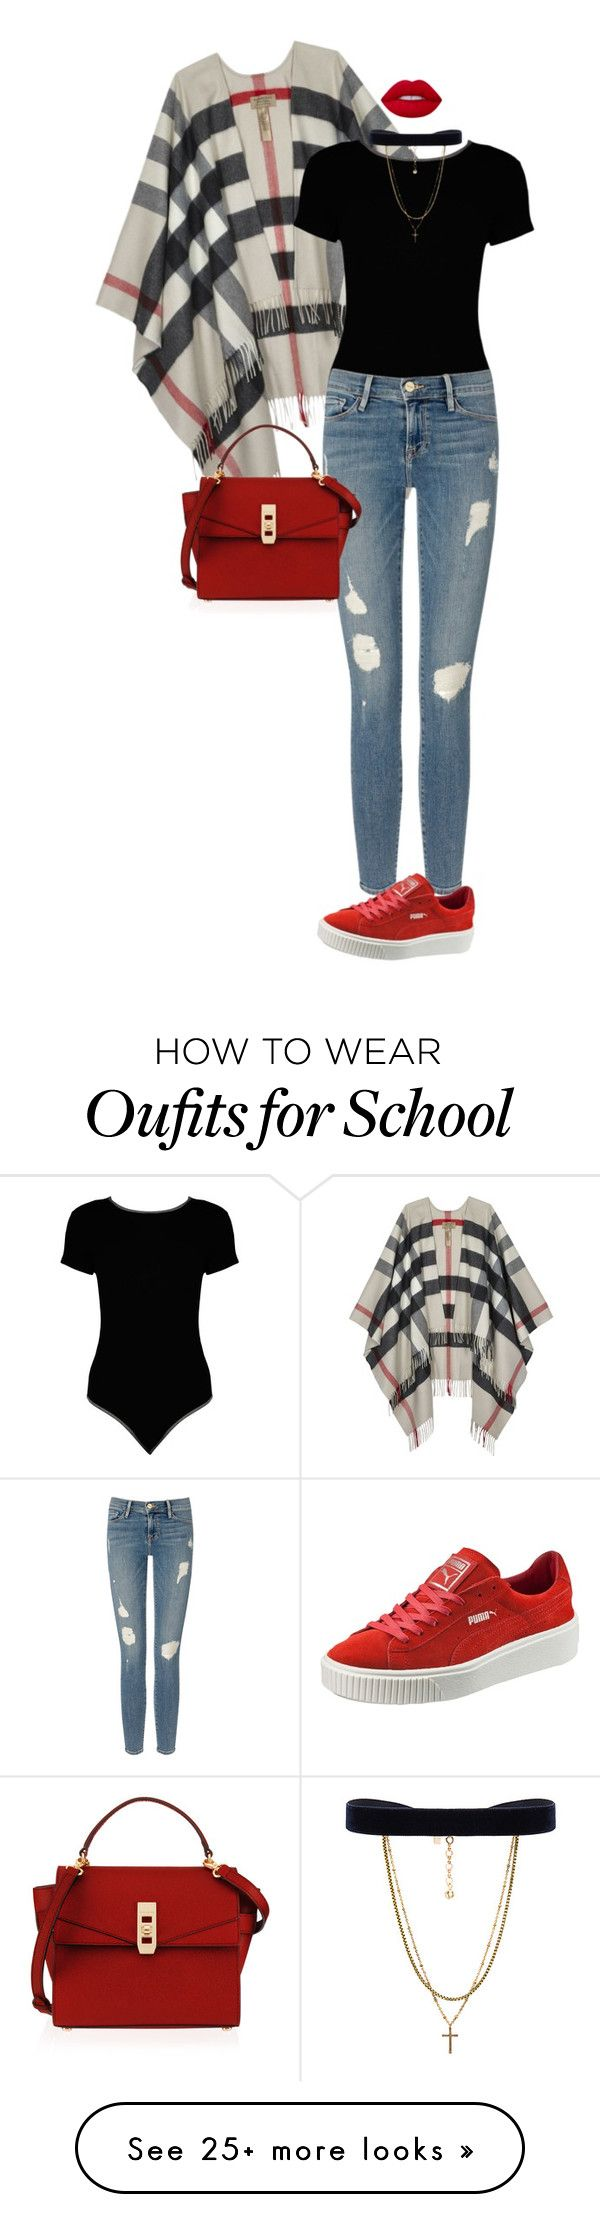 """School Girl."" by ms-ashmarie on Polyvore featuring Burberry, Boohoo, Frame Denim, Puma, Henri Bendel, Vanessa Mooney and Lime Crime"